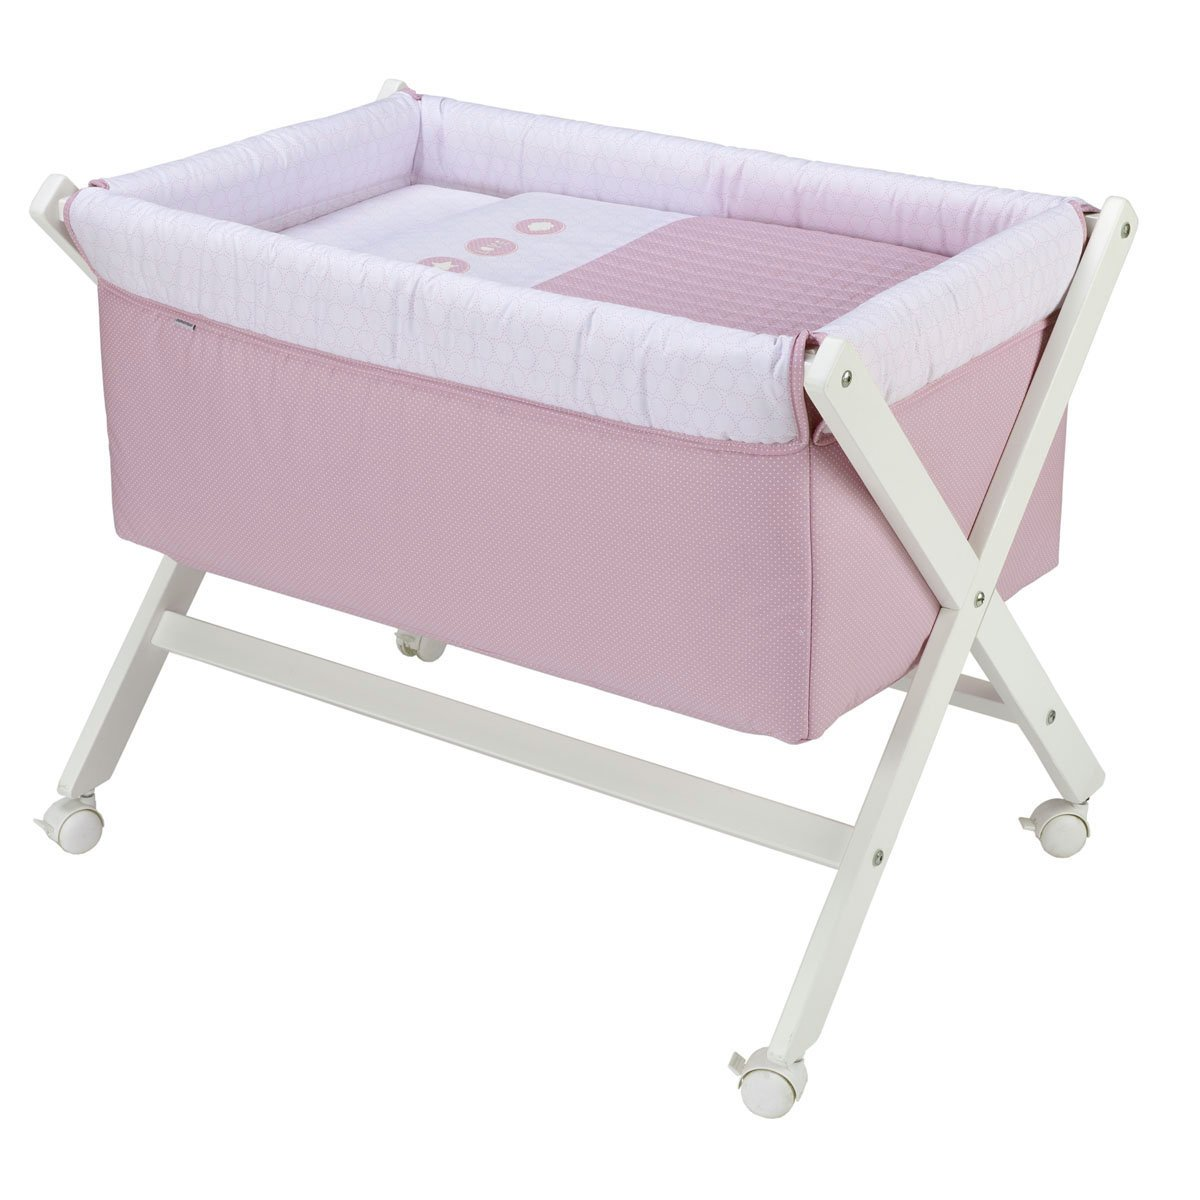 Cambrass Small Bed X Wood Une, 55 x 87 x 74 cm, Pic Pink Cambruss 41220